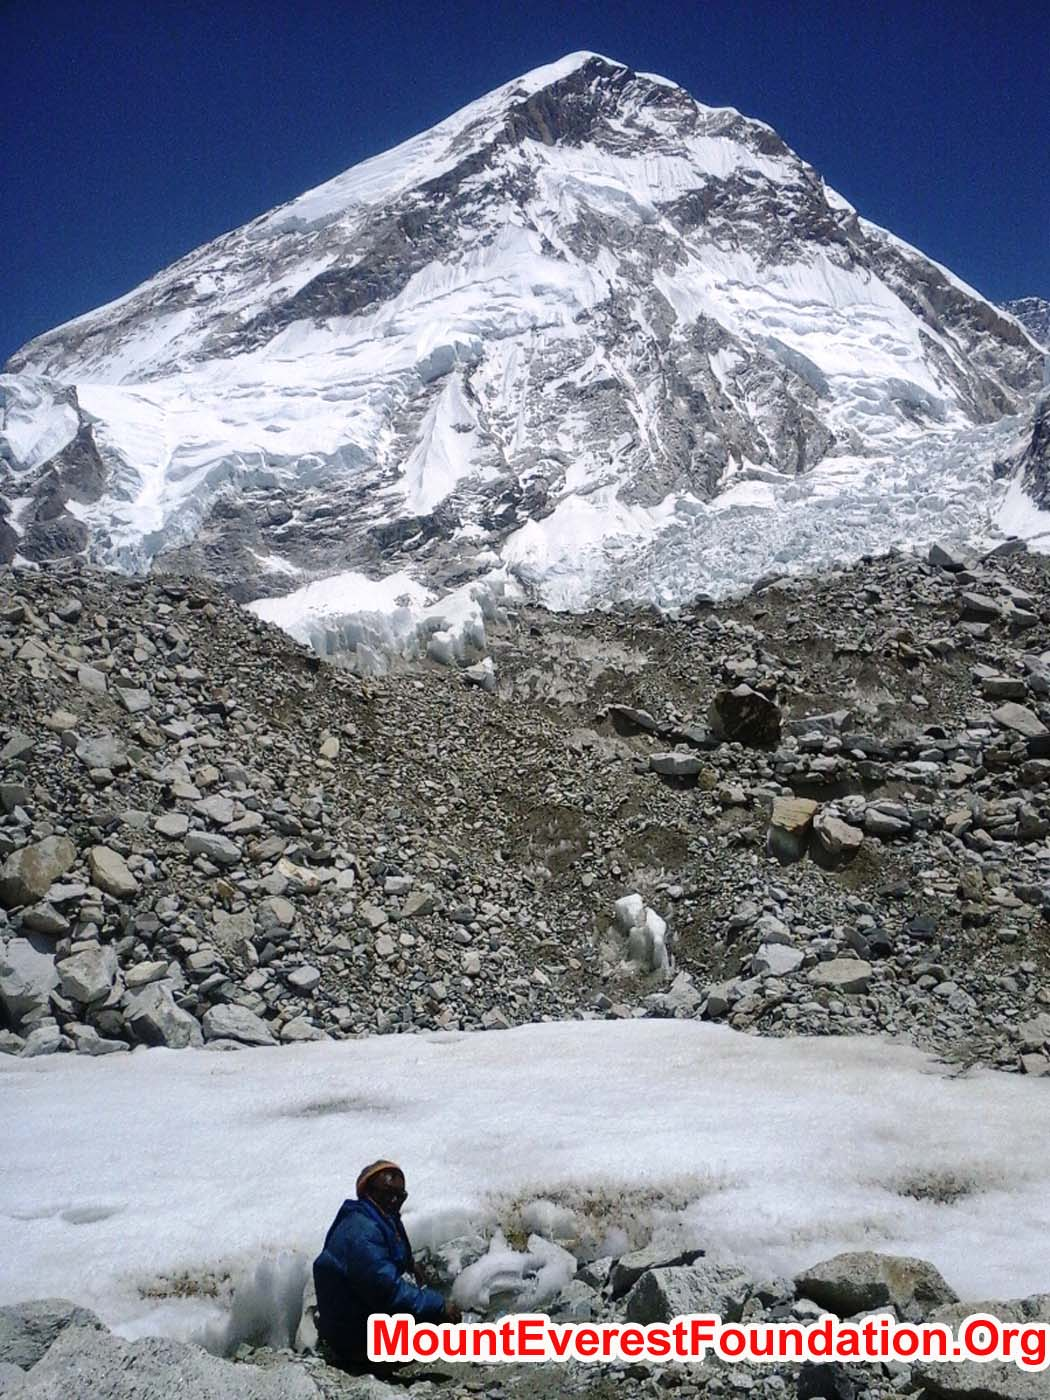 Rukman Sunwar collecting a water sample from Mount Everest base camp